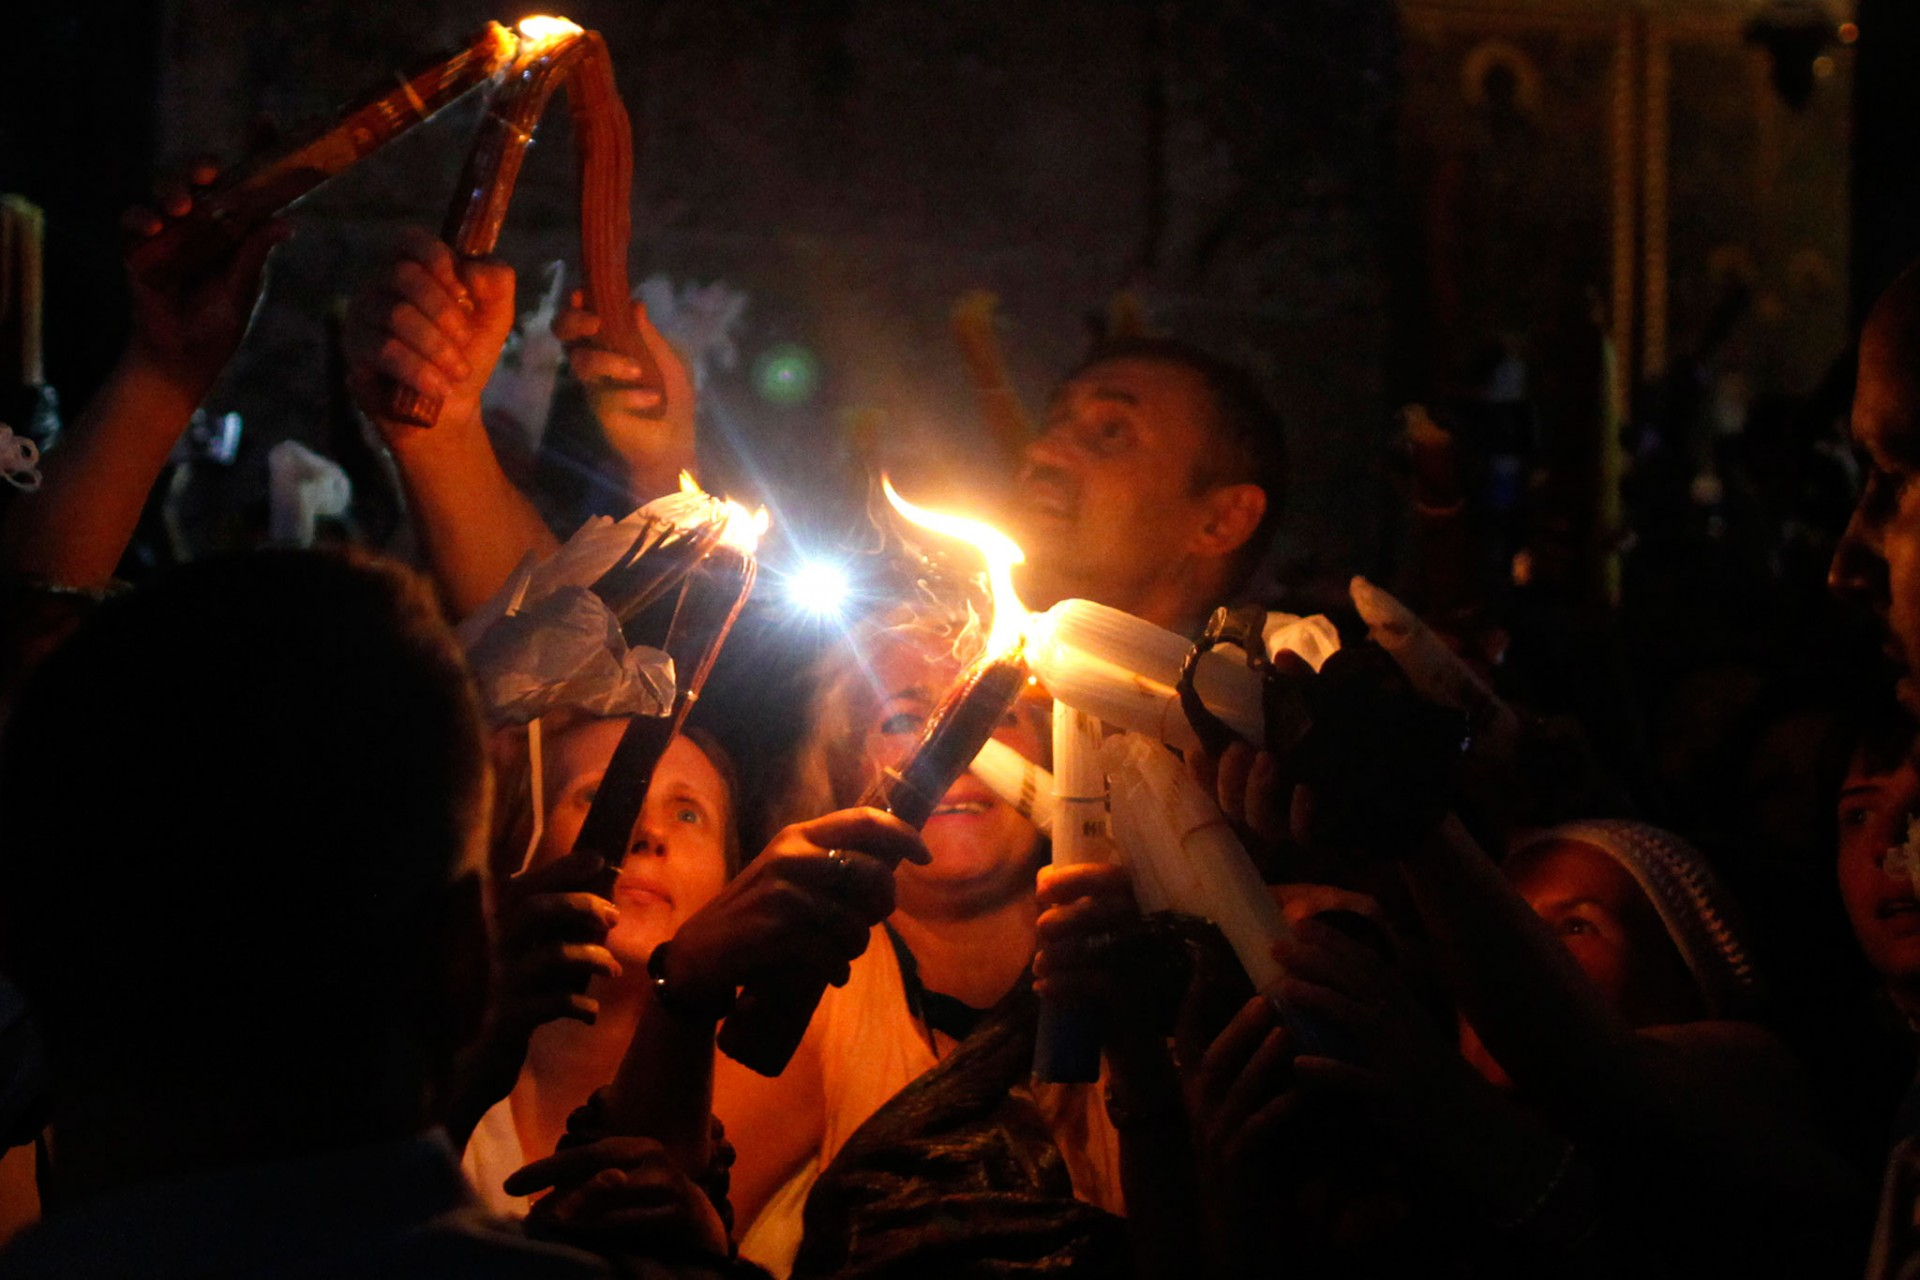 Holy Fire Ceremony at the Church of the Holy Sepulchre, Jerusalem 2013